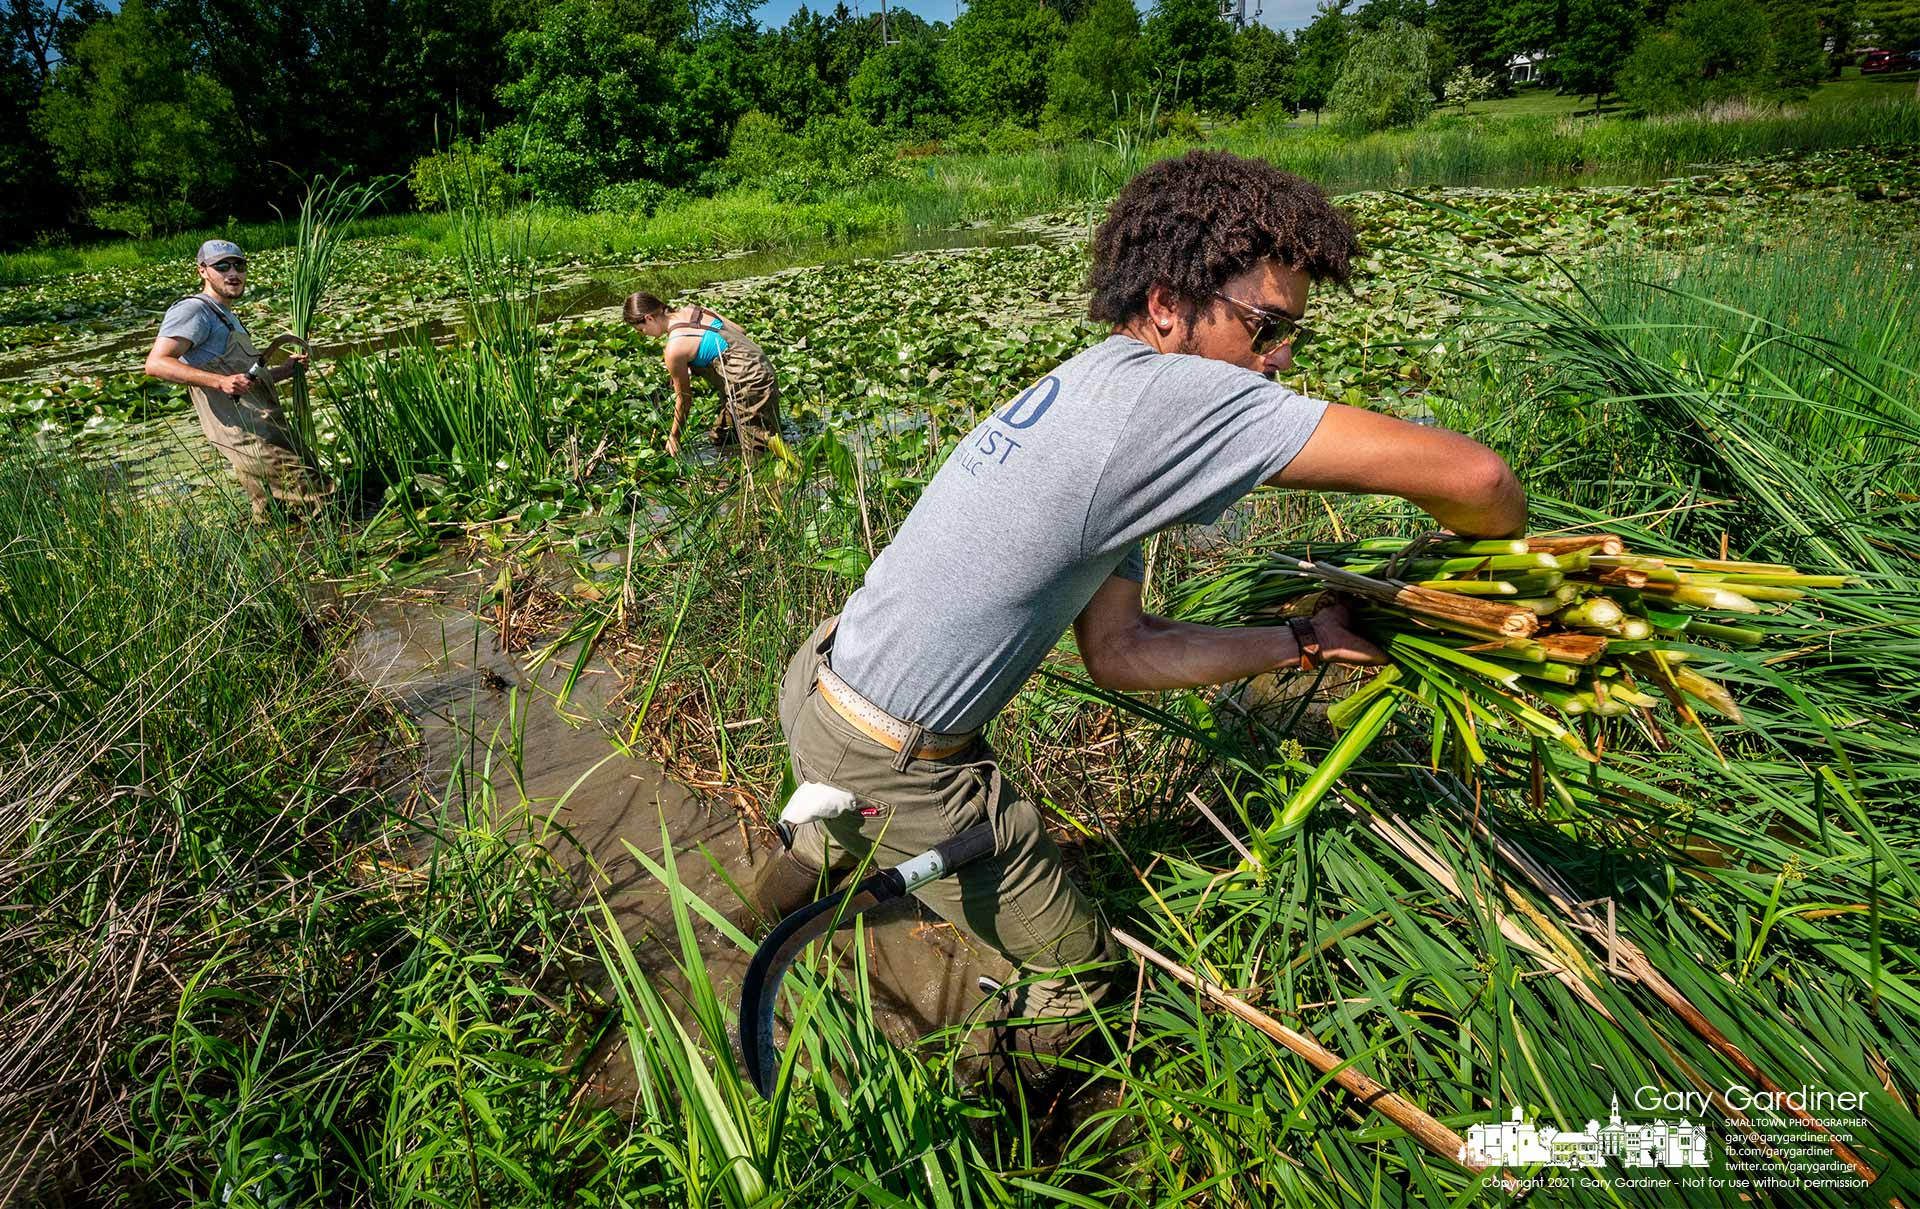 A crew from MAD Scientist cuts invasive narrow-leaved cattail from a section of the wetlands at the Highlands Aquatic Center park. My Final Photo for June 4, 2021.